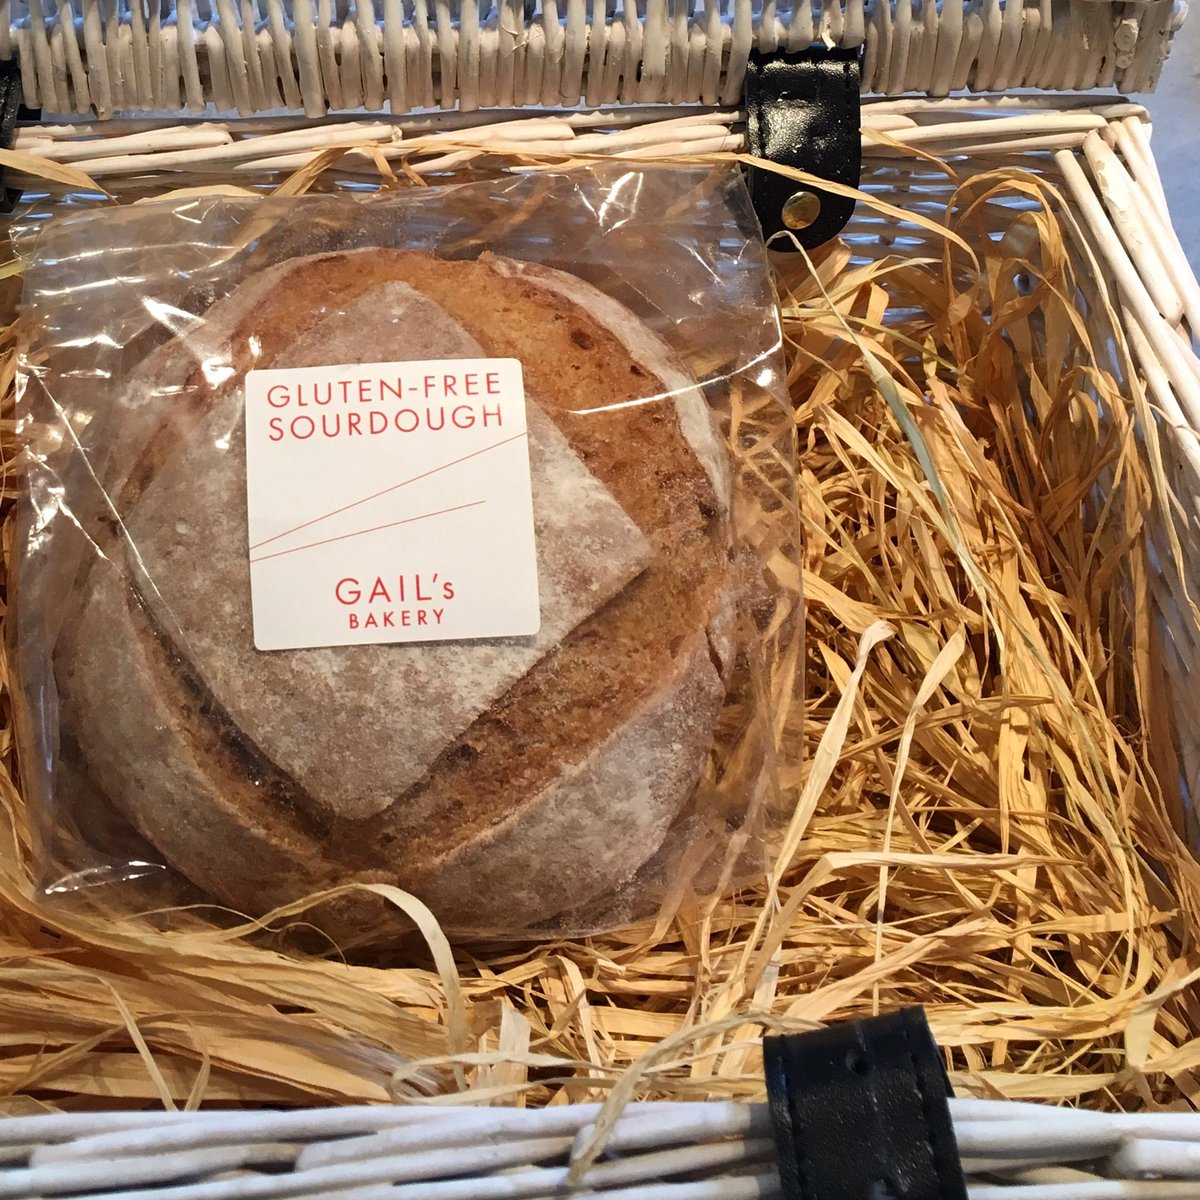 Gails bakery on twitter the wait is over our new gluten free gails bakery on twitter the wait is over our new gluten free sourdough in selected bakeries from today glutenfree sourdough httpstvg1hhbqr57 negle Choice Image